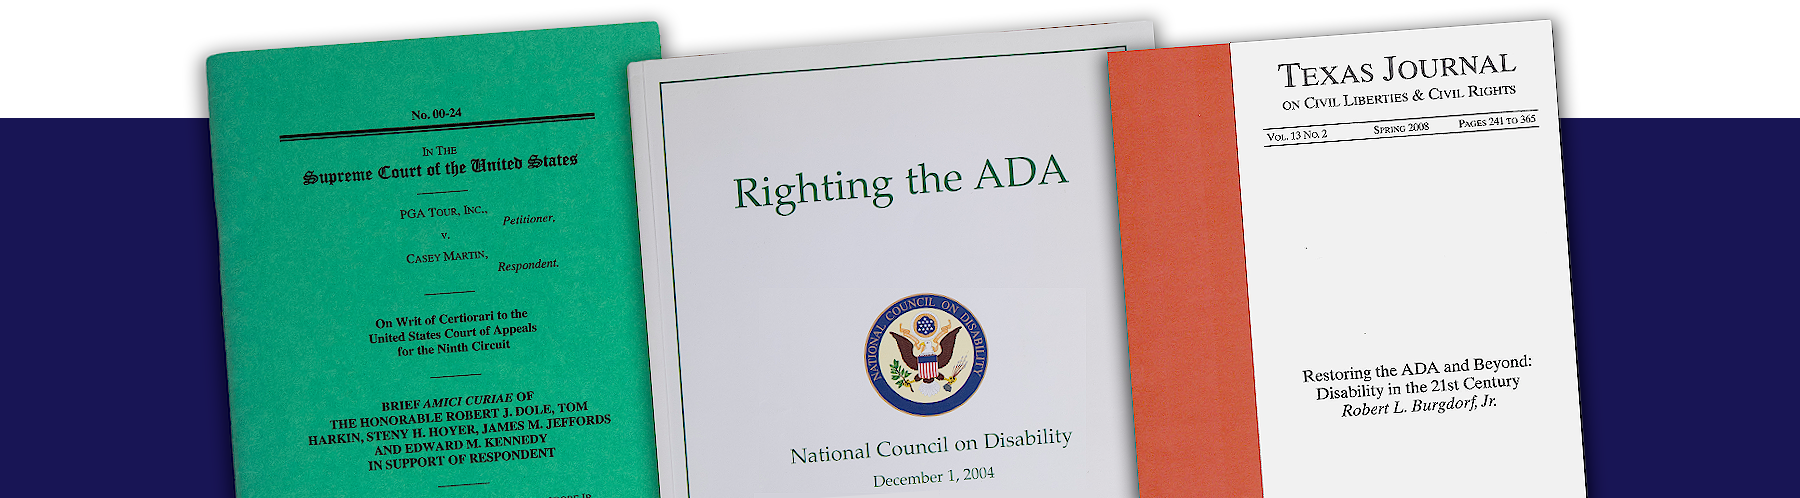 collage of important document covers related to the passage of the ADA